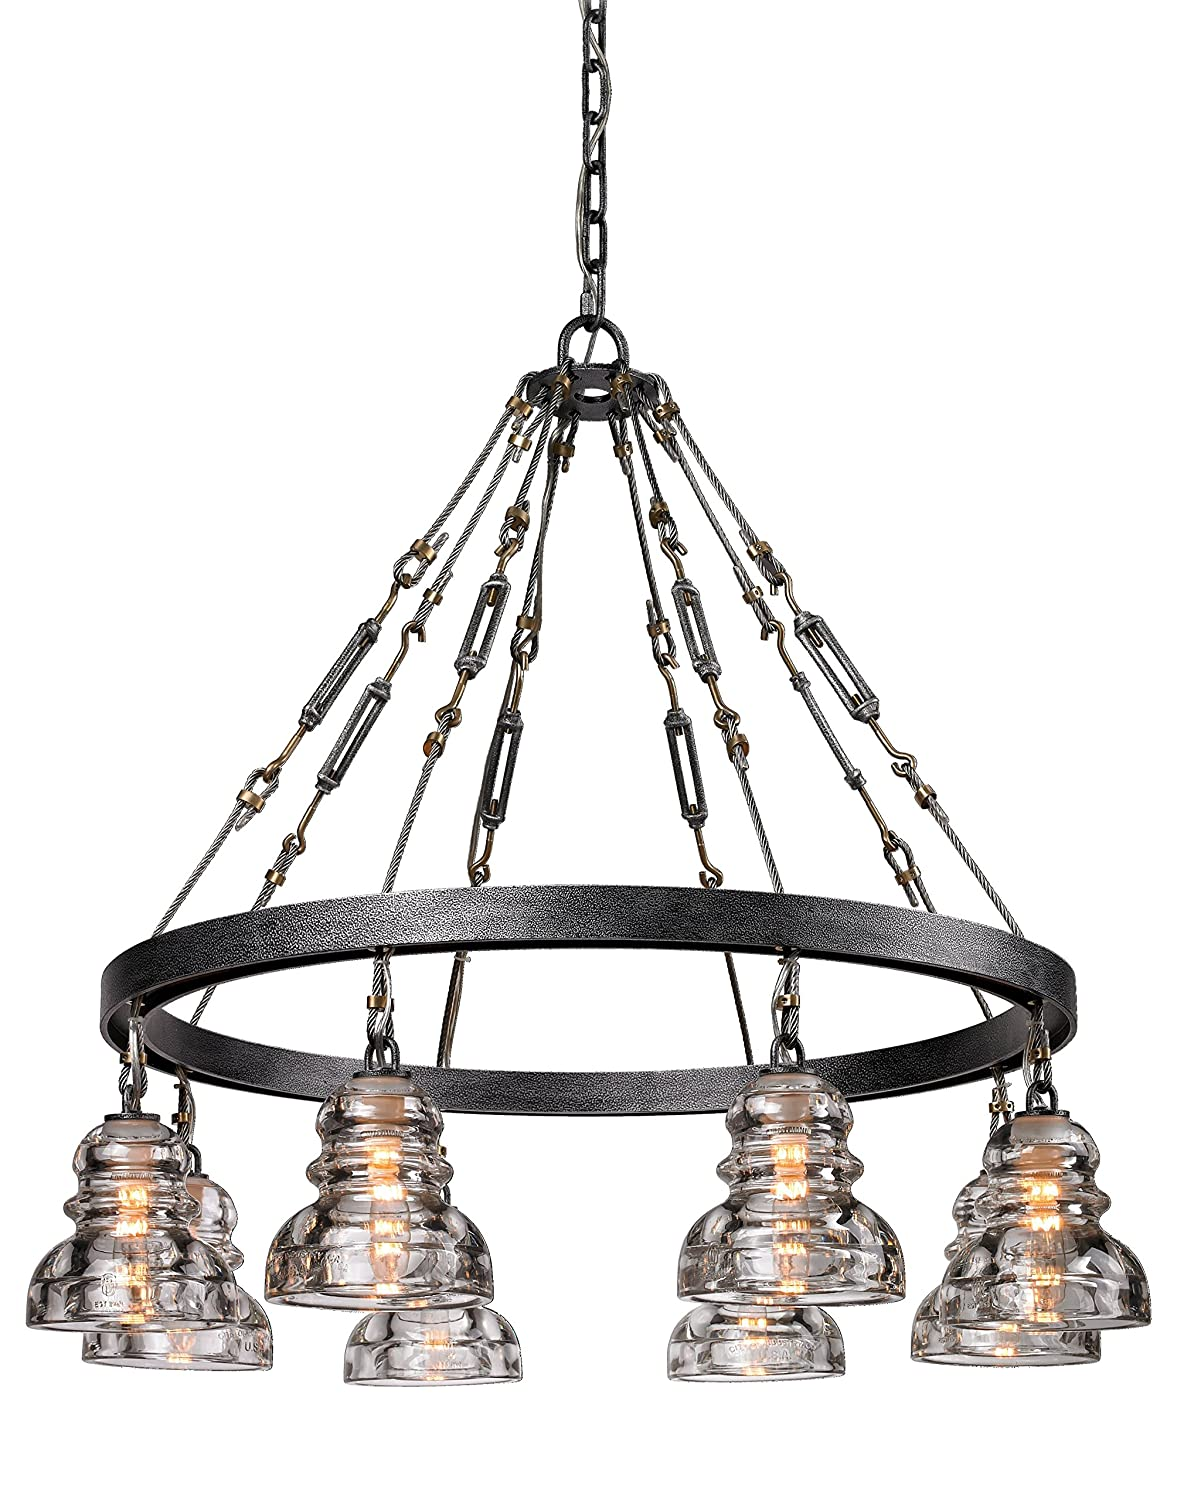 Amazon troy lighting menlo park 255 w 5 light pendant old amazon troy lighting menlo park 255 w 5 light pendant old silver finish with historic pressed clear glass home improvement arubaitofo Image collections